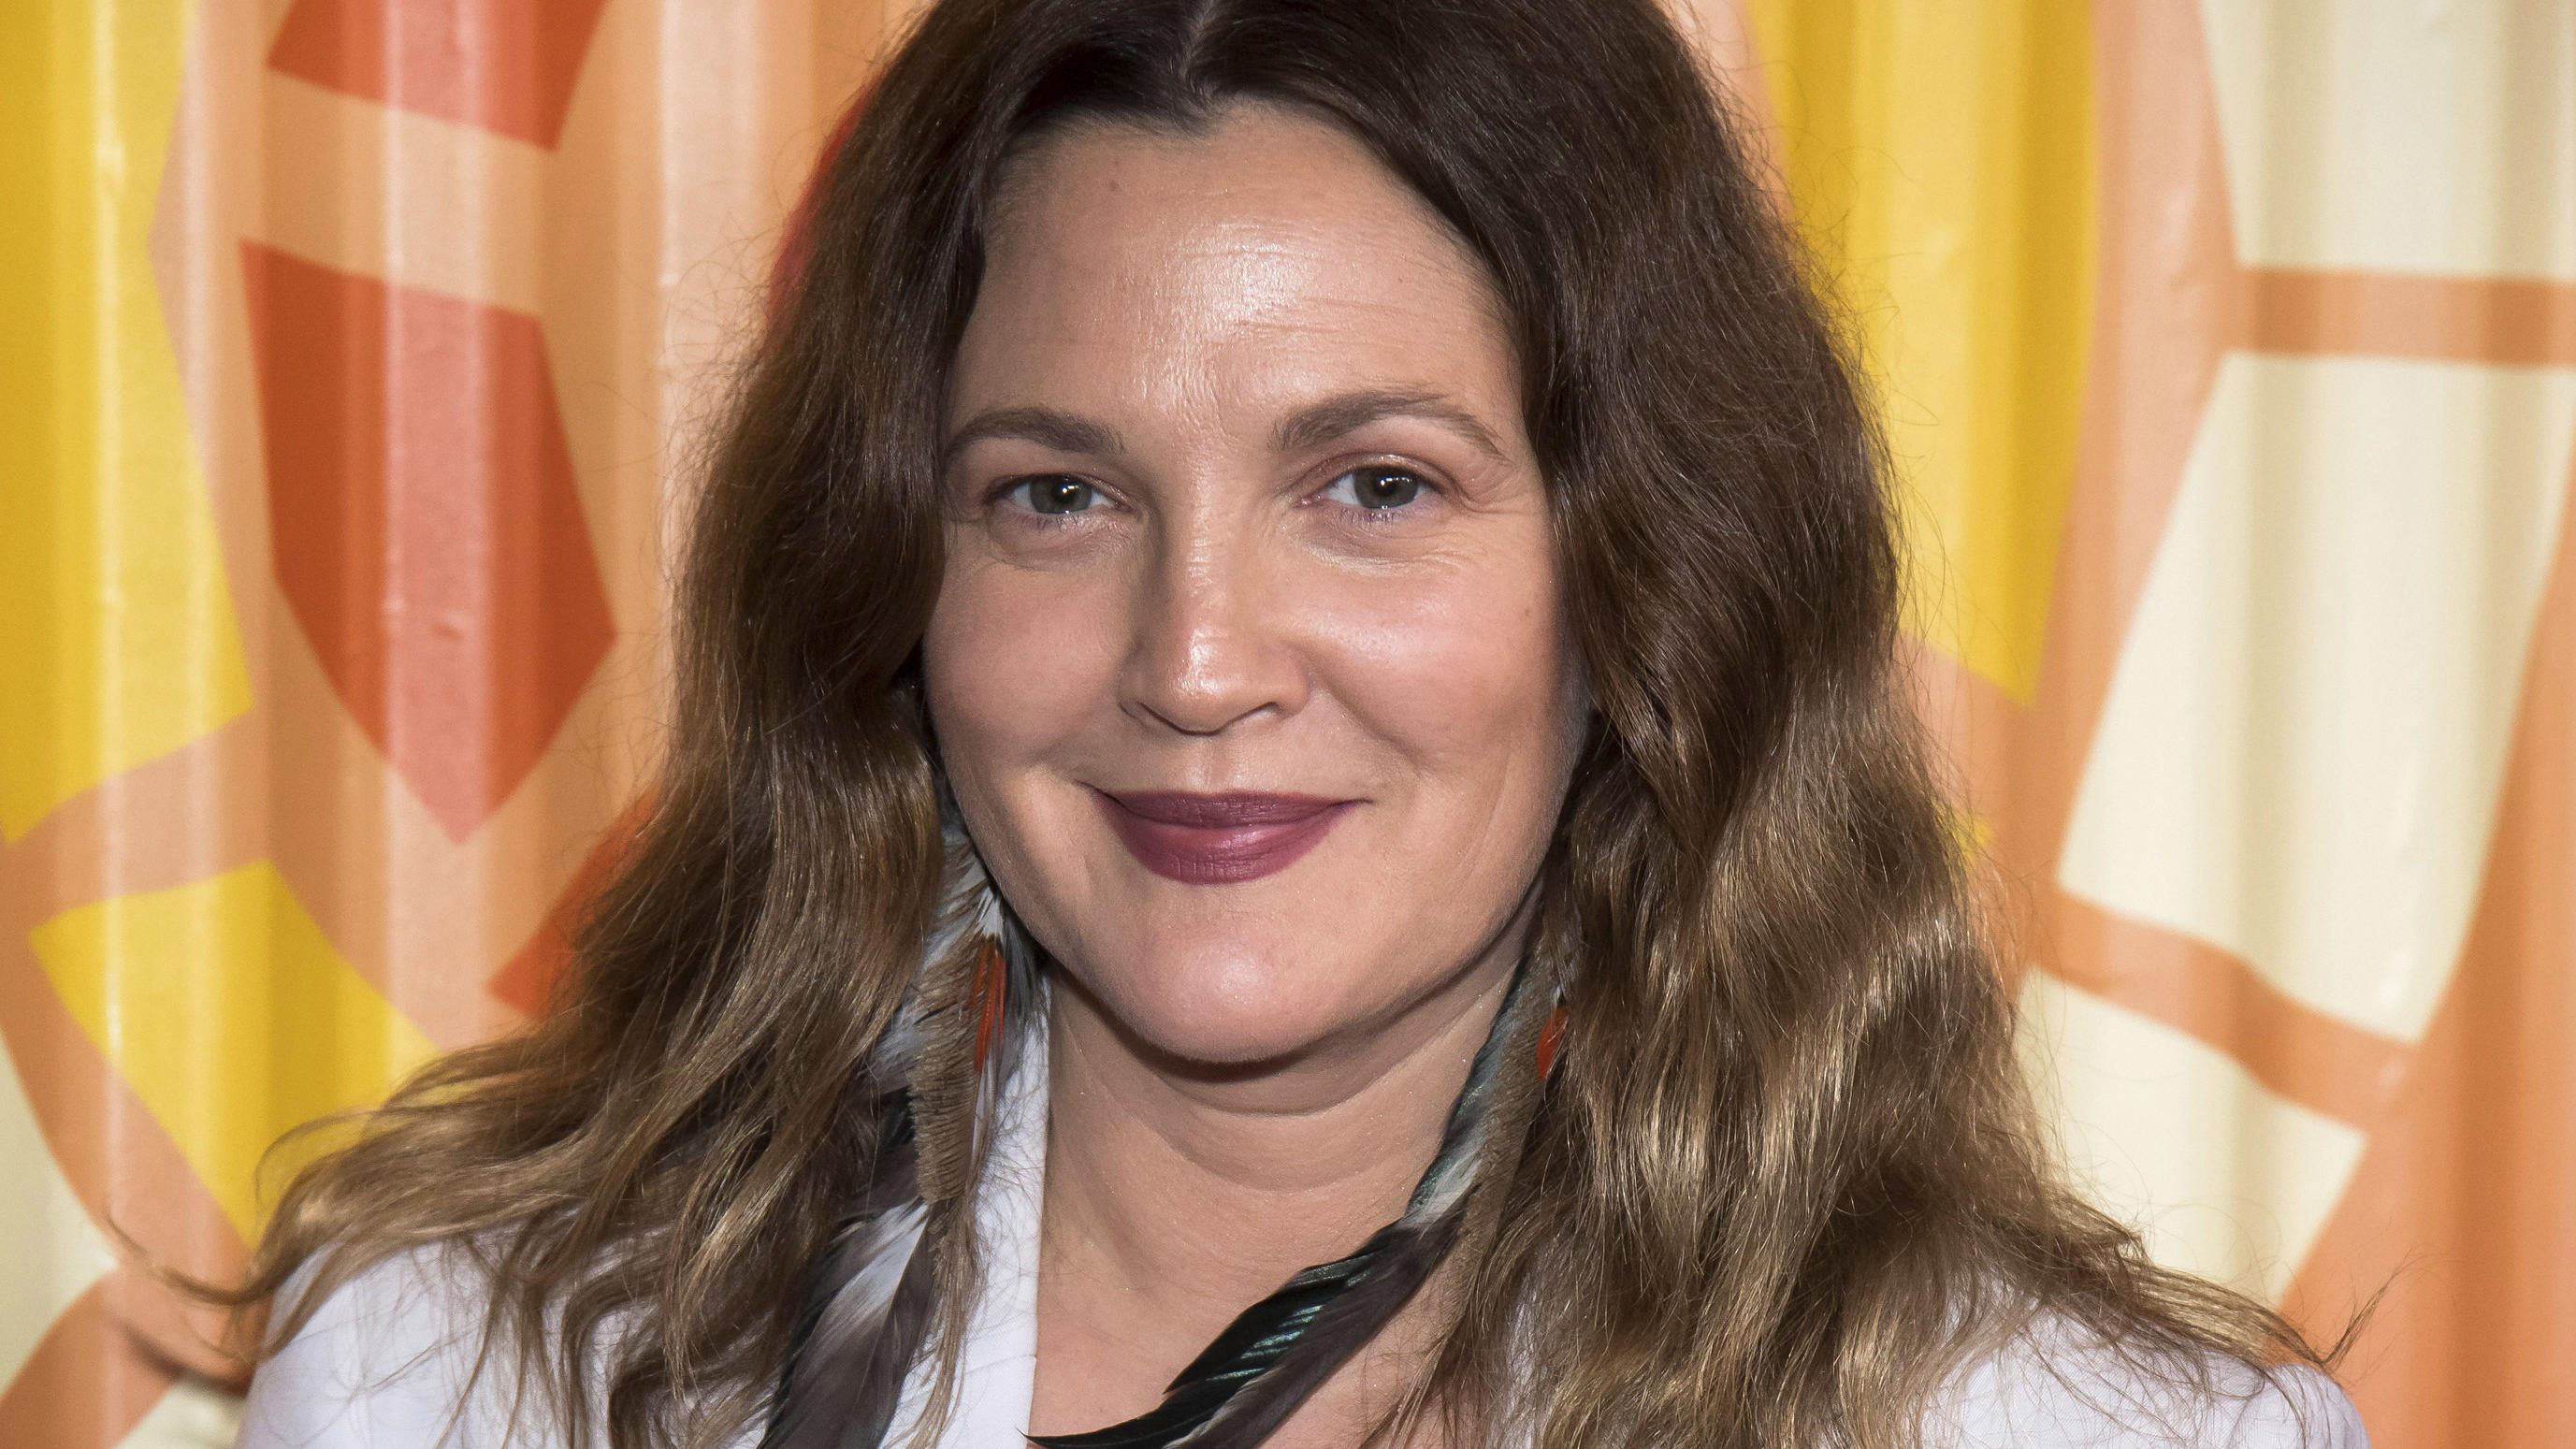 "FILE - Drew Barrymore attends The Charlize Theron Africa Outreach Project fundraiser on Nov. 12, 2019, in New York. Barrymore's first show on Monday, Sept. 13, 2020, distributed by the CBS television studio, features former ""Charlie's Angels"" co-star"